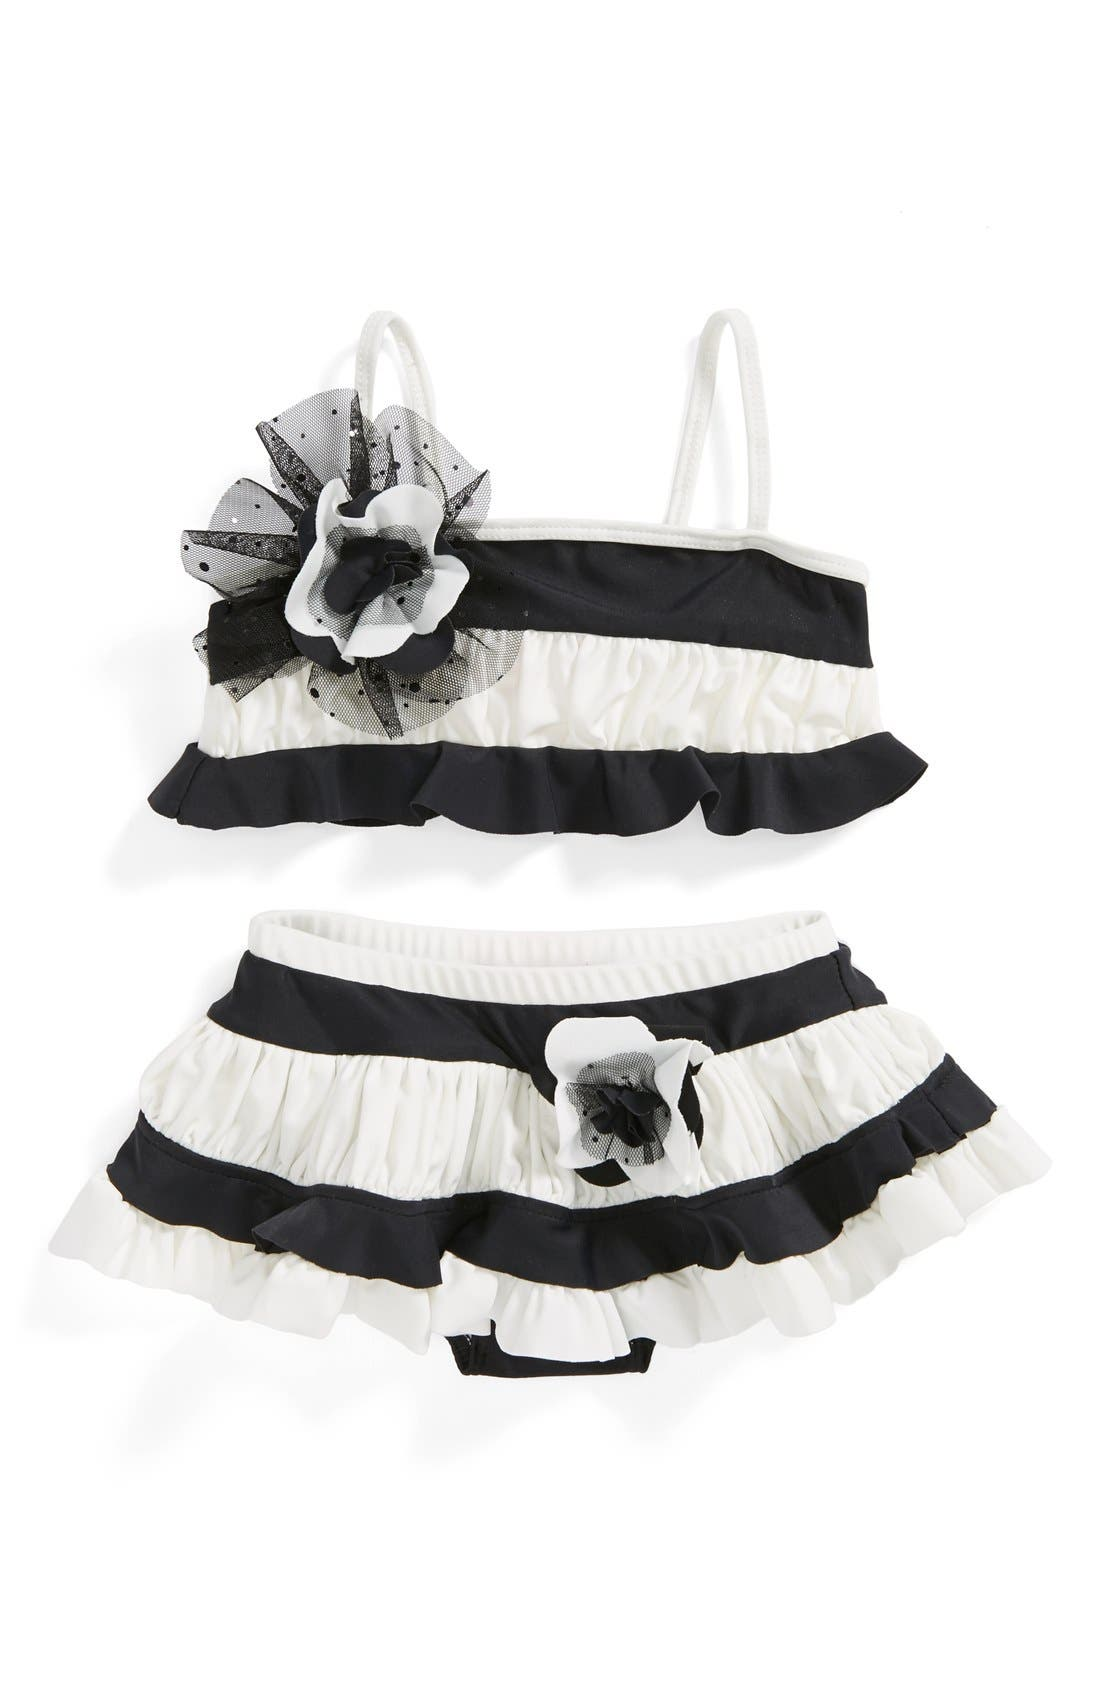 Alternate Image 1 Selected - Isobella & Chloe 'Sparkling Tide' Two-Piece Swimsuit (Toddler Girls)